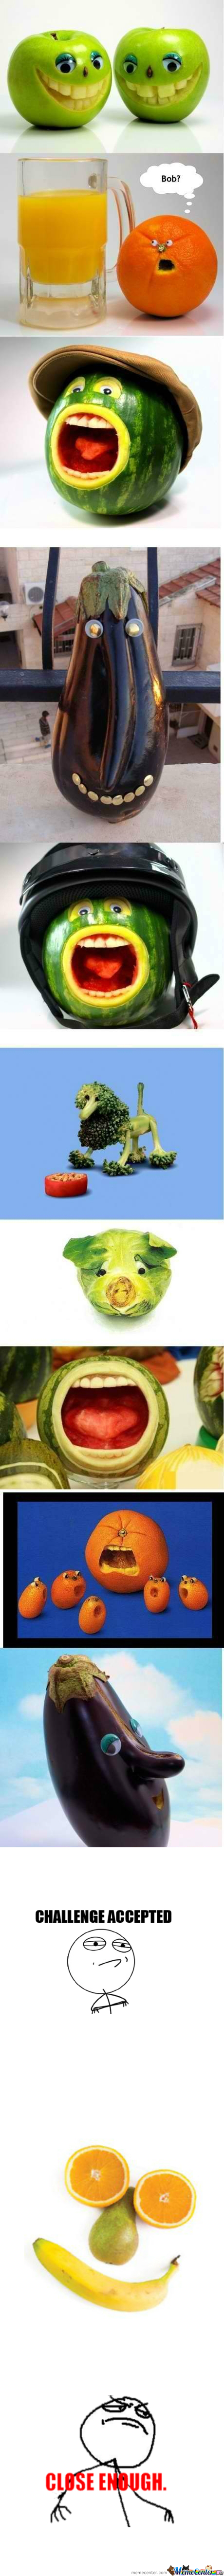 [RMX] Funny Fruits And Vegetables!...